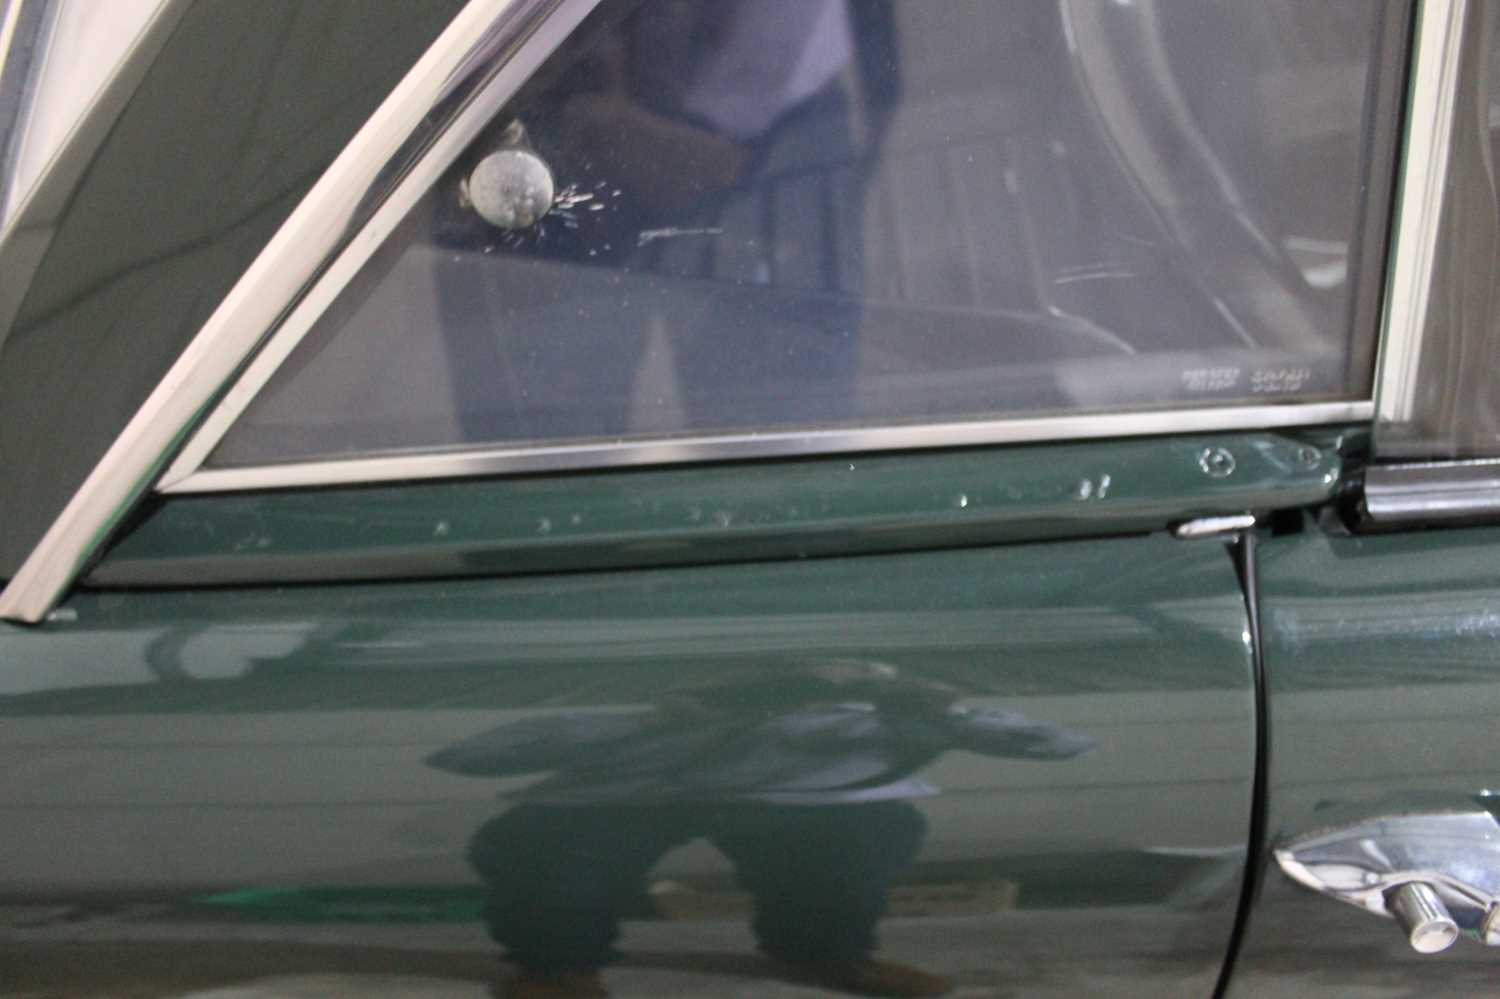 A 1968 Sunbeam Alpine Series V GT Reg No. NLY978F Chassis No. B395016307GTOD Green with Black - Image 33 of 43